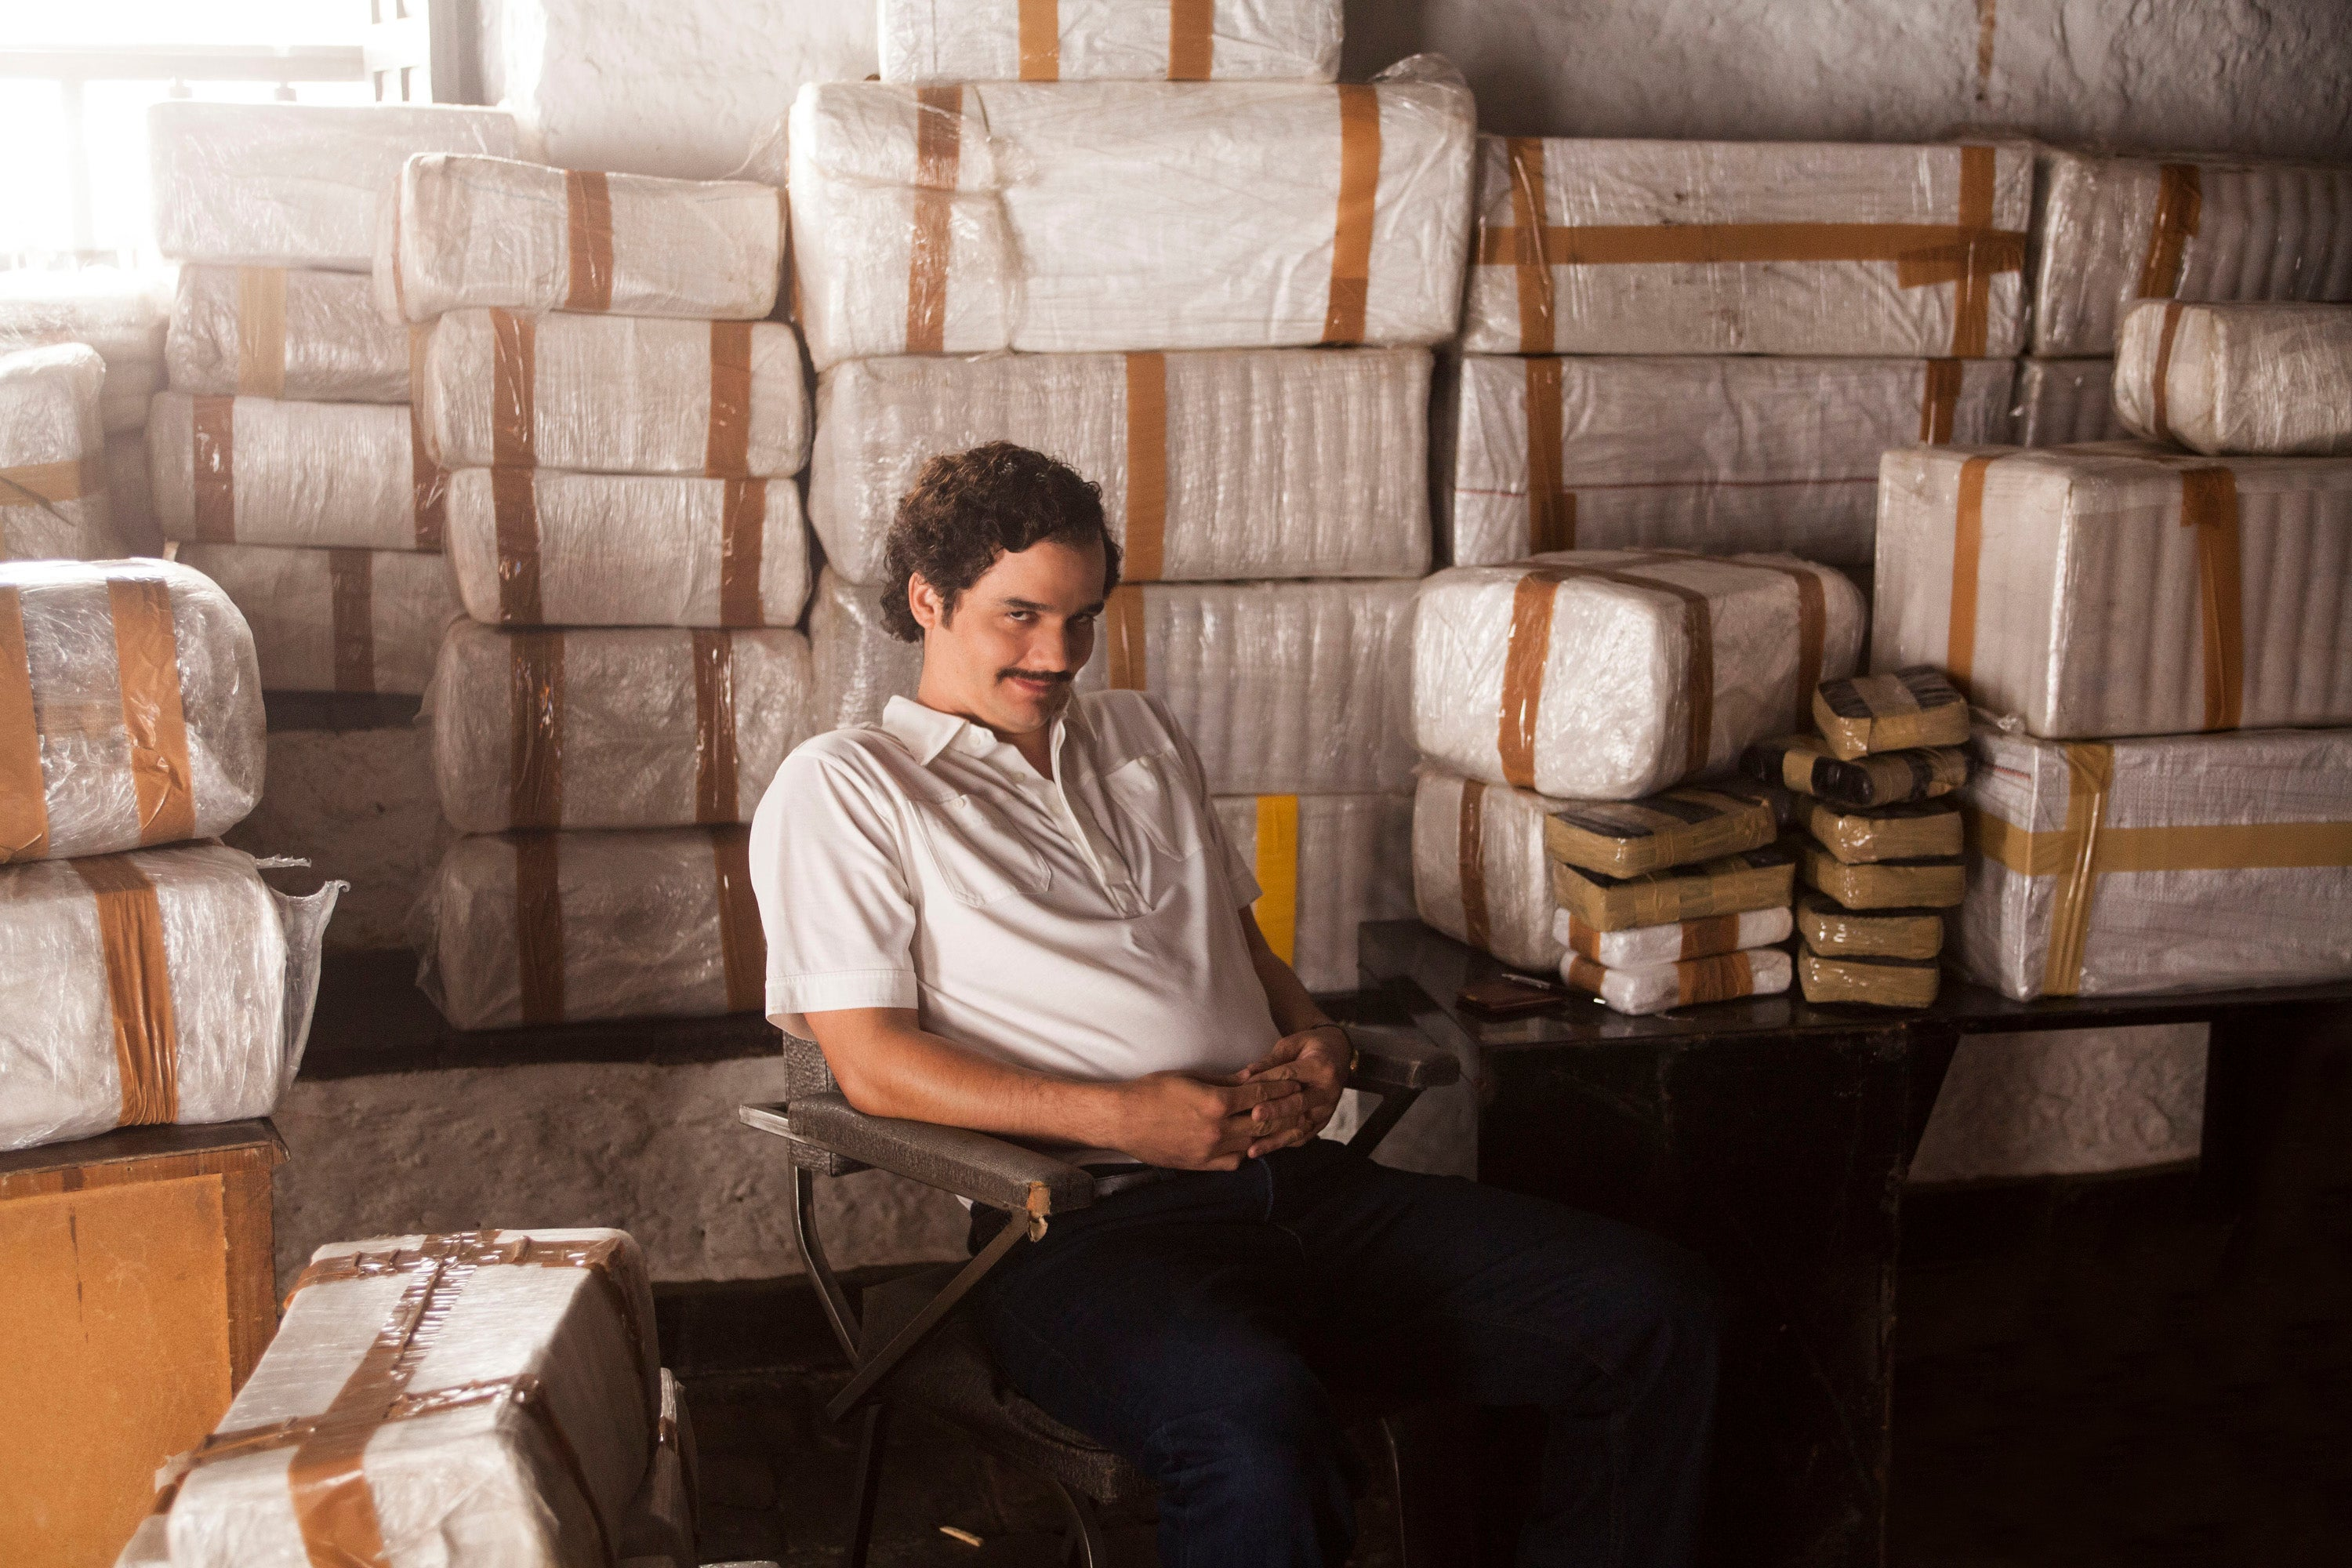 narcos on netflix who is pablo escobar meet the real people narcos on netflix who is pablo escobar meet the real people behind the drama the independent